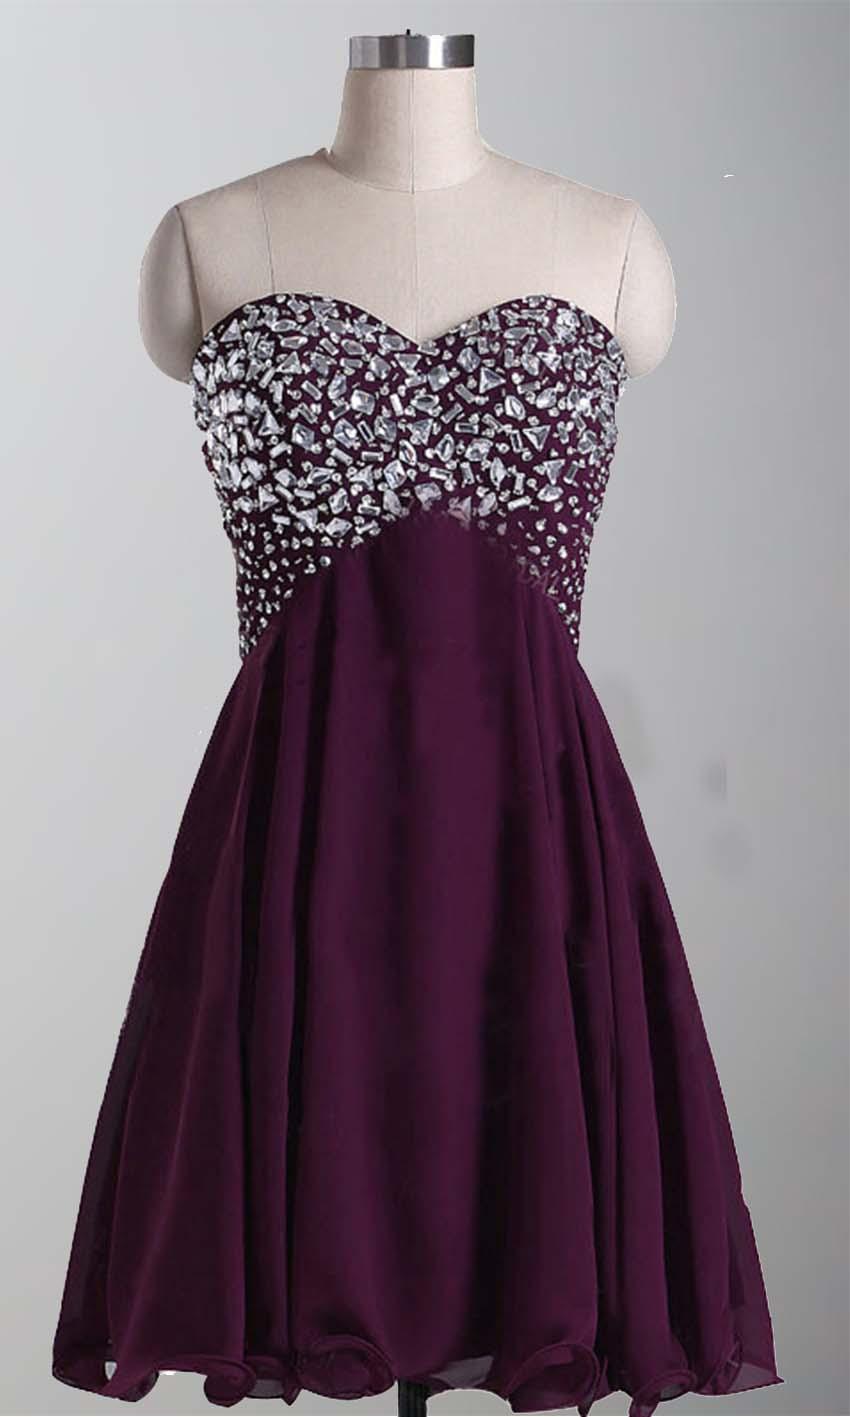 £86.00 : cheap prom dresses uk, bridesmaid dresses, 2014 prom & evening dresses, look for cheap elegant prom dresses 2014, cocktail gowns, or dresses for special occasions? kissprom.co.uk offers various bridesmaid dresses, evening dress, free shipping to uk etc.